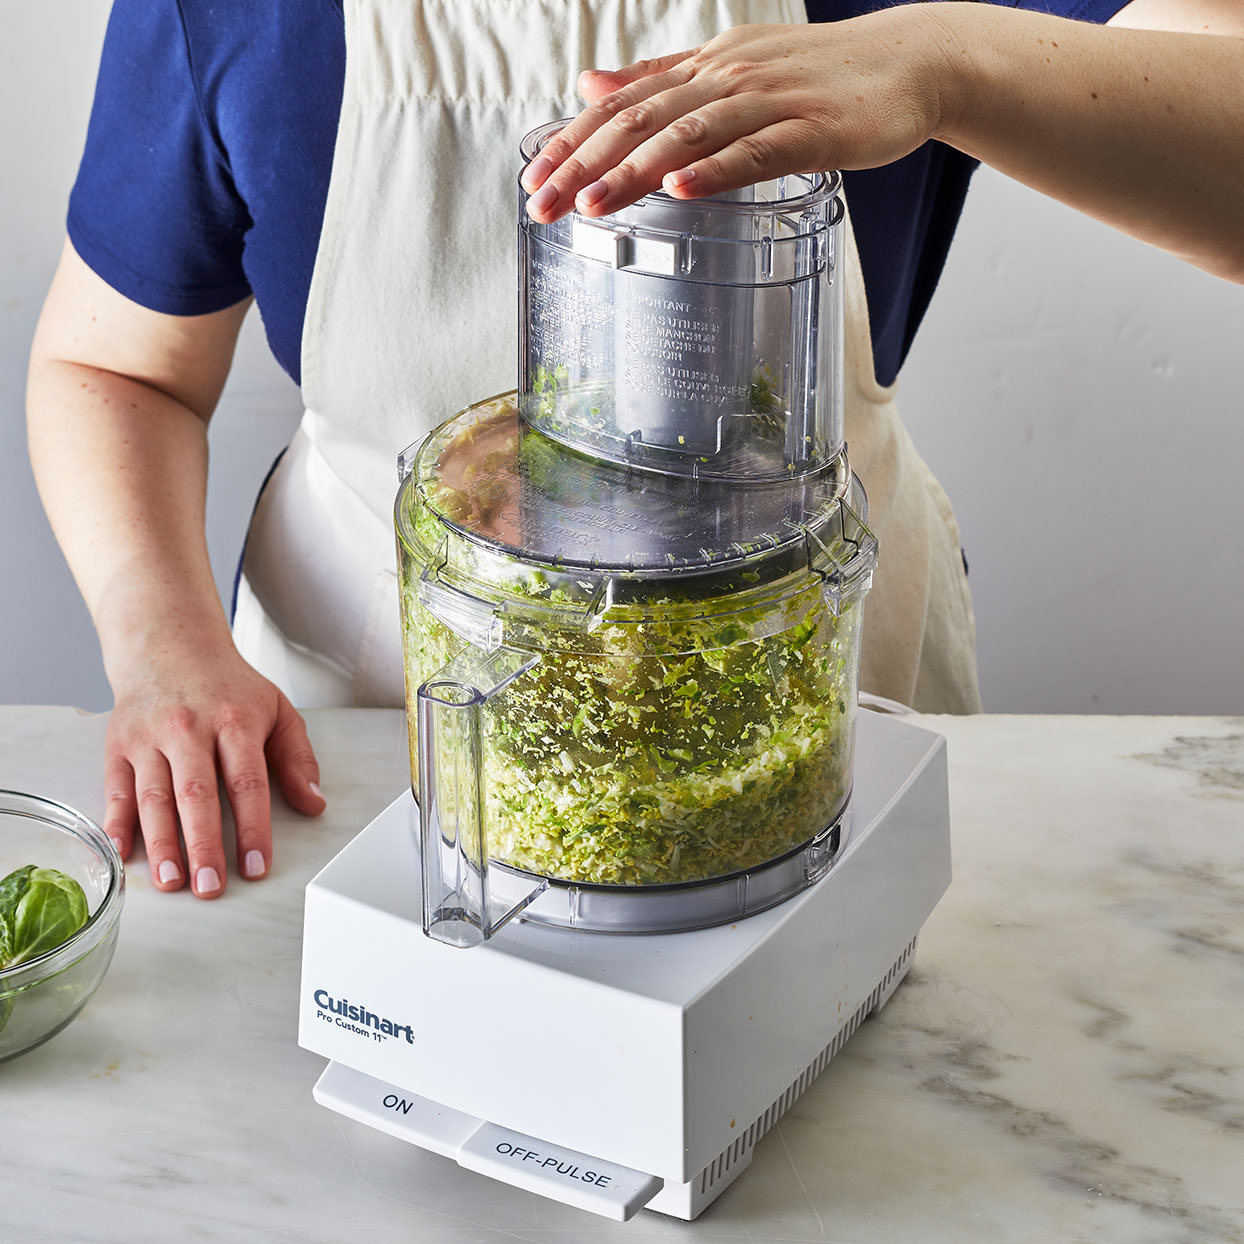 Brussels-Sprouts-in-a-Food-Processor